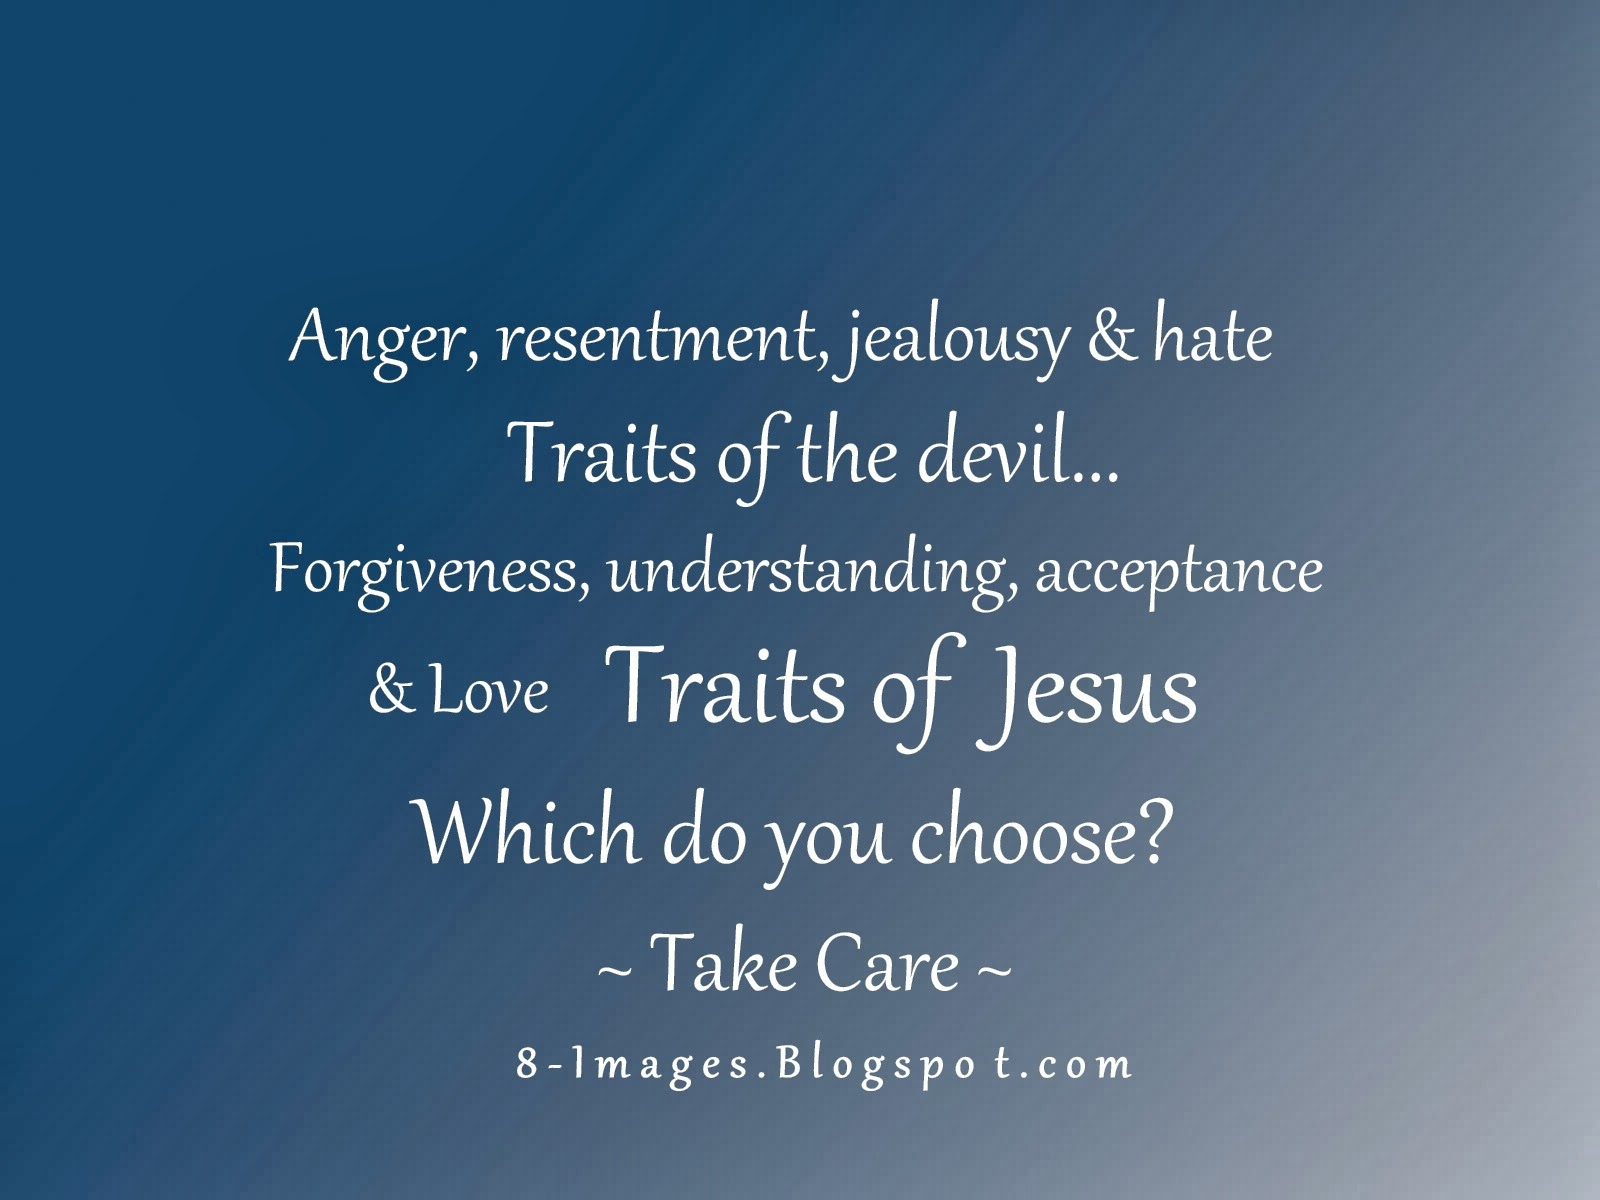 scriptures on anger and resentment in relationship